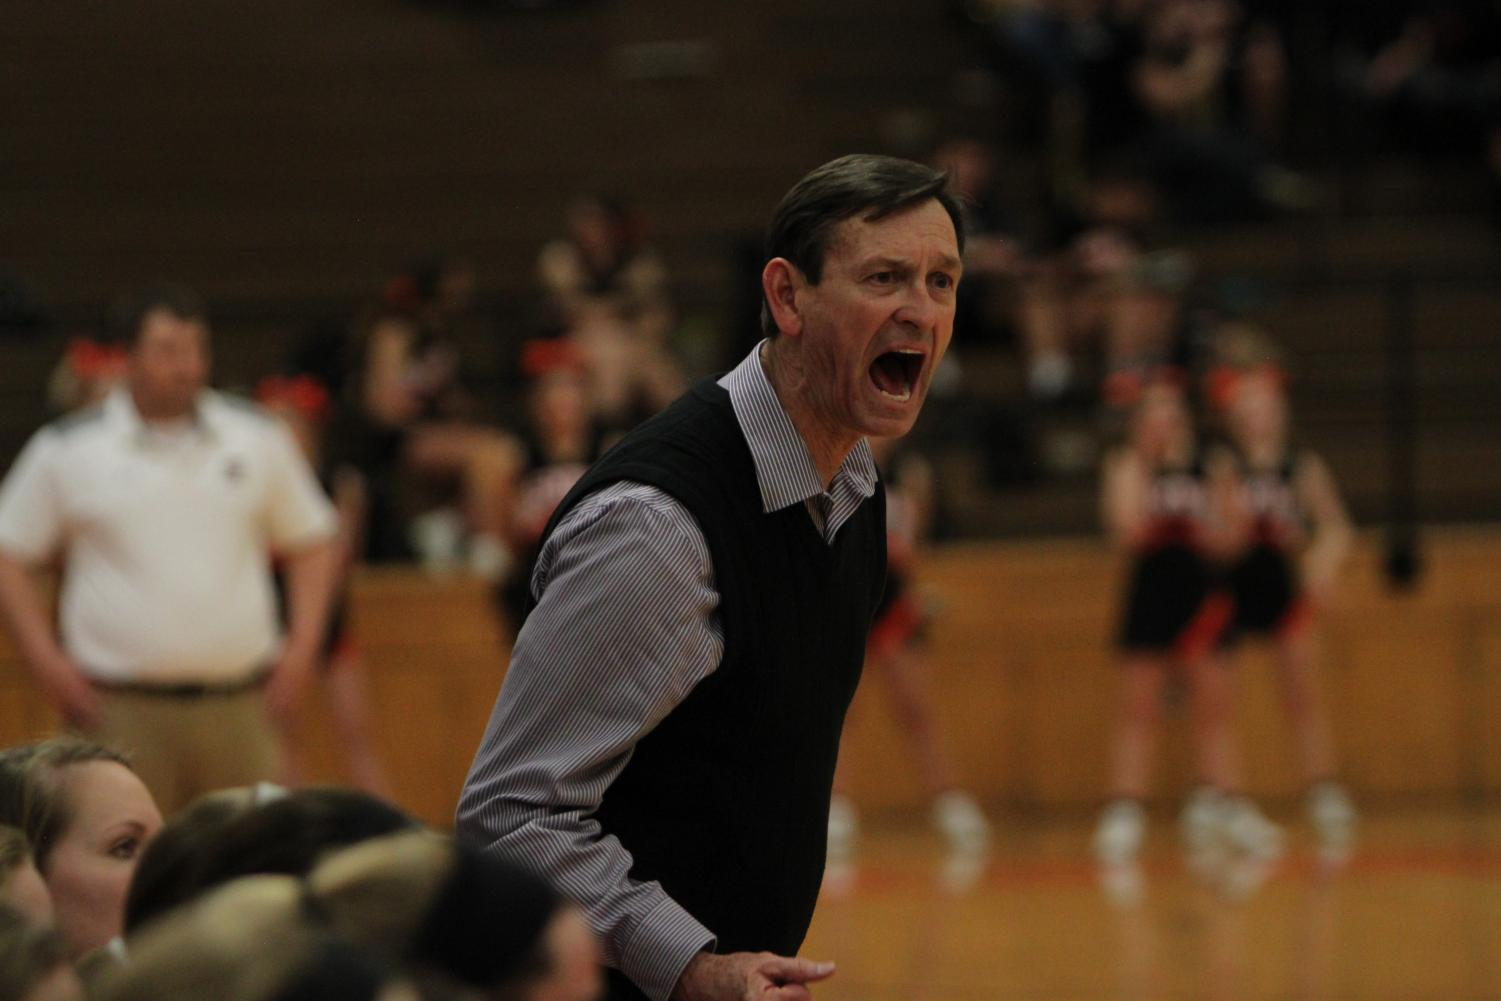 Head coach Brian Bubalo screams at an official during the Huskies substate matchup with Shawnee Mission Northwest at SMNW Feb. 27. The Huskies were defeated by the Cougars, 43-34.